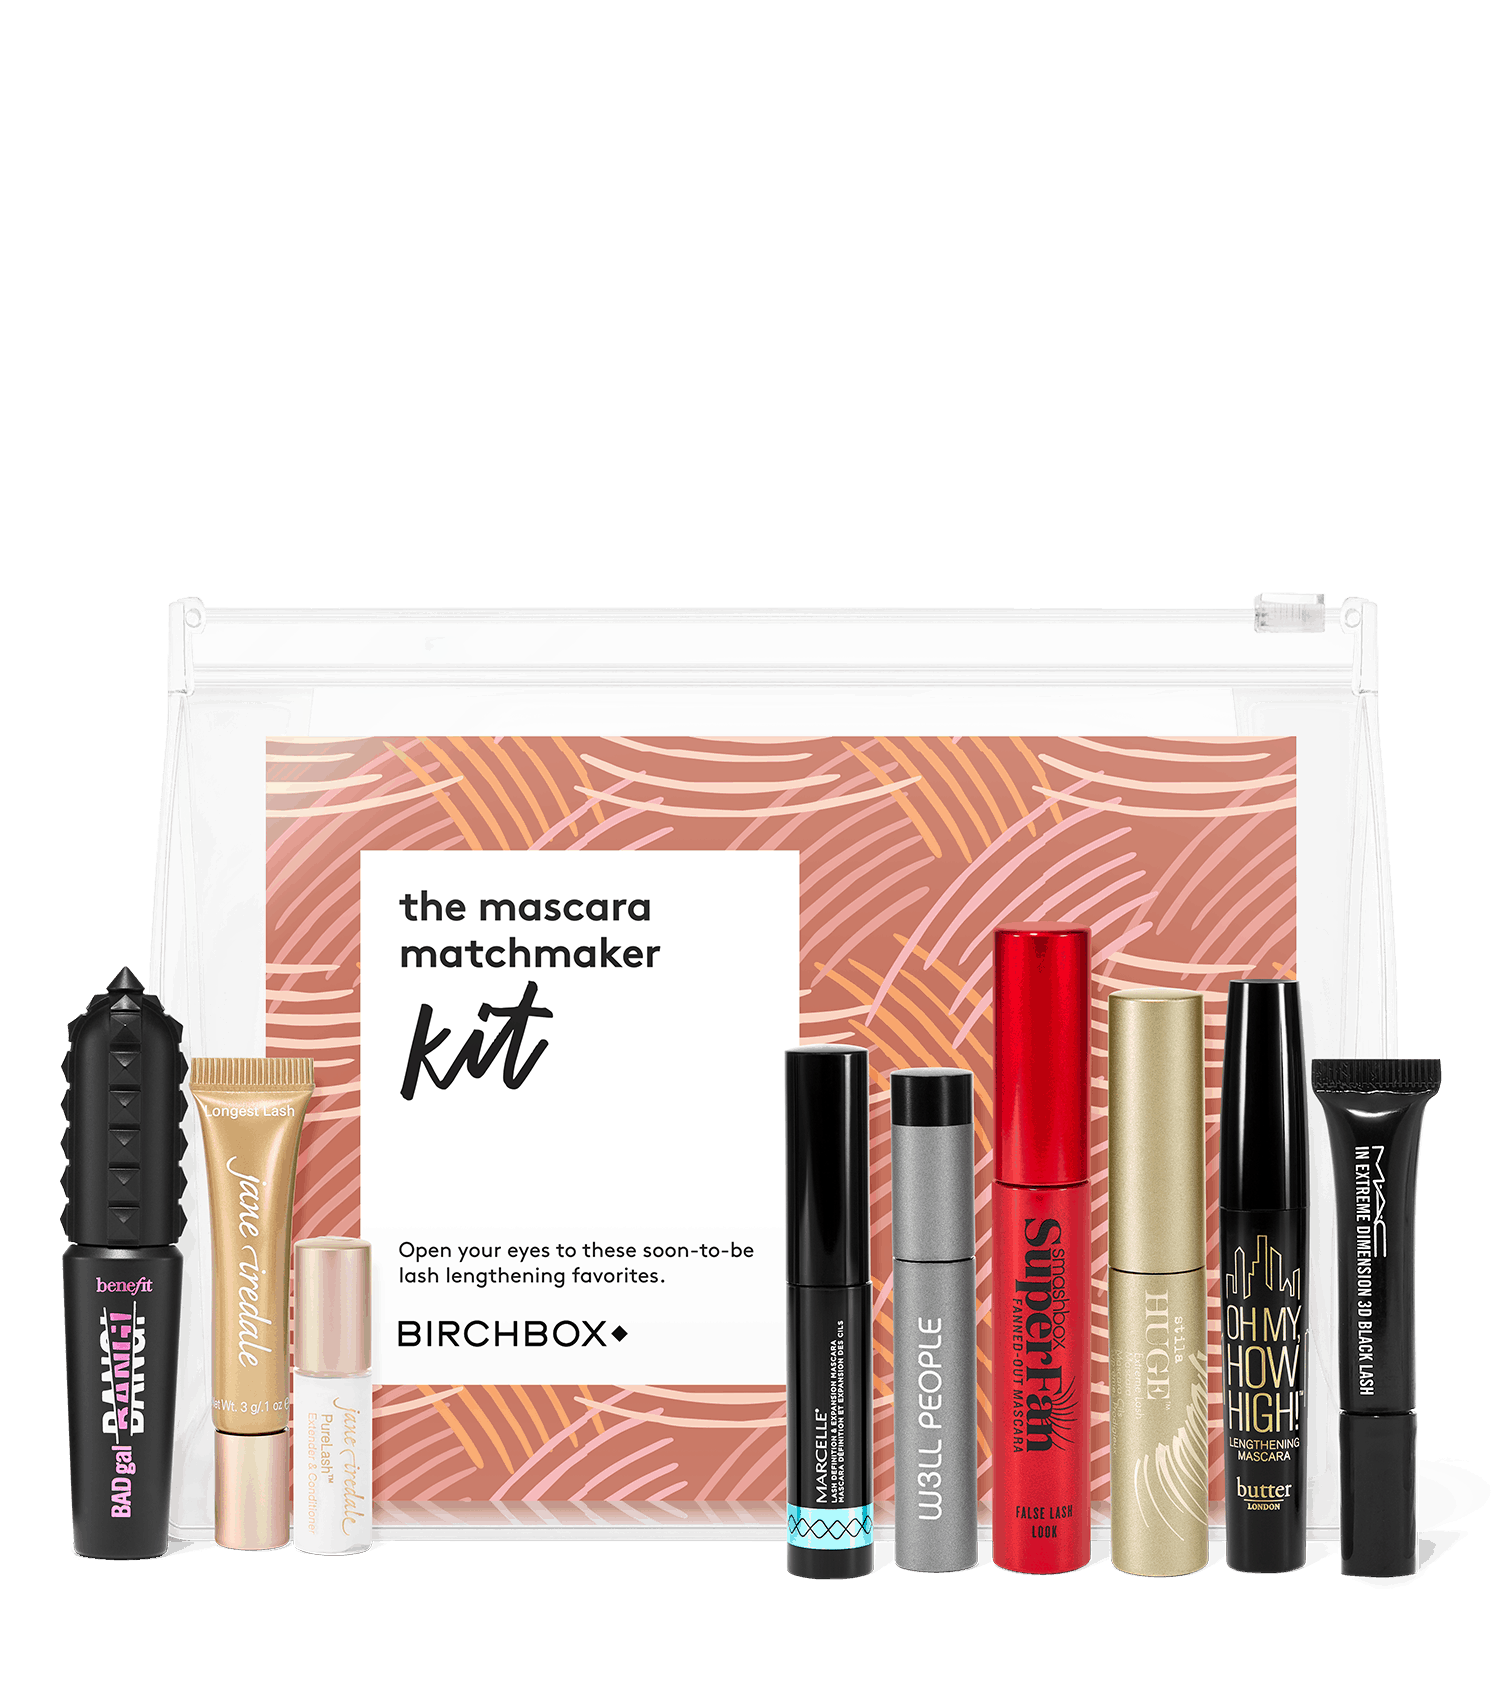 The Mascara Matchmaker Kit – New Birchbox Kit Available Now + Coupons!